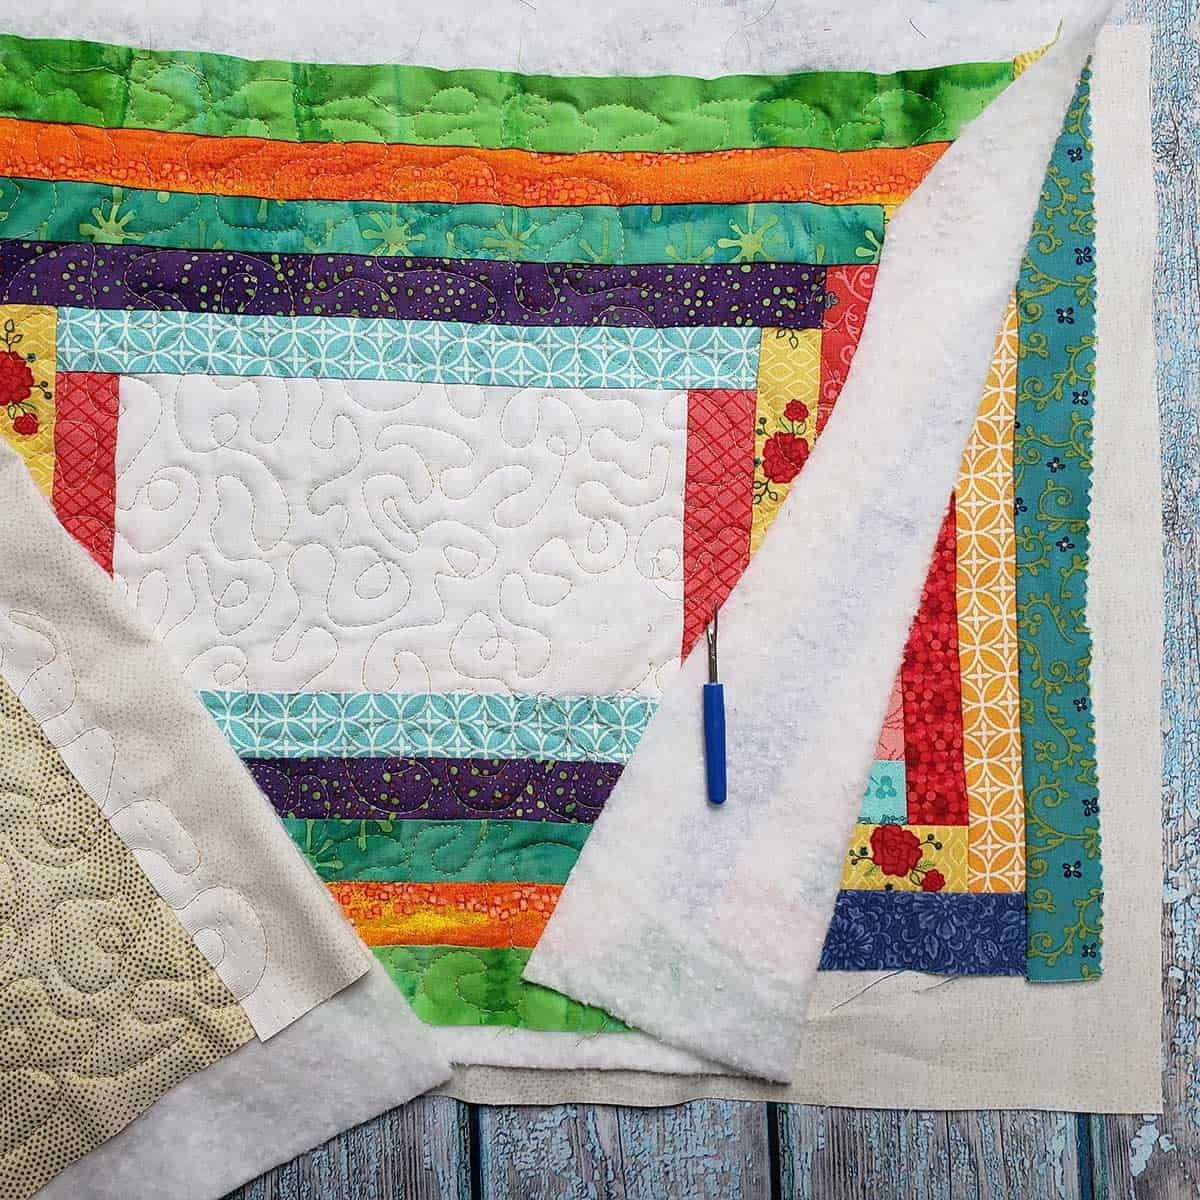 Quilting the placemats and making a mistake